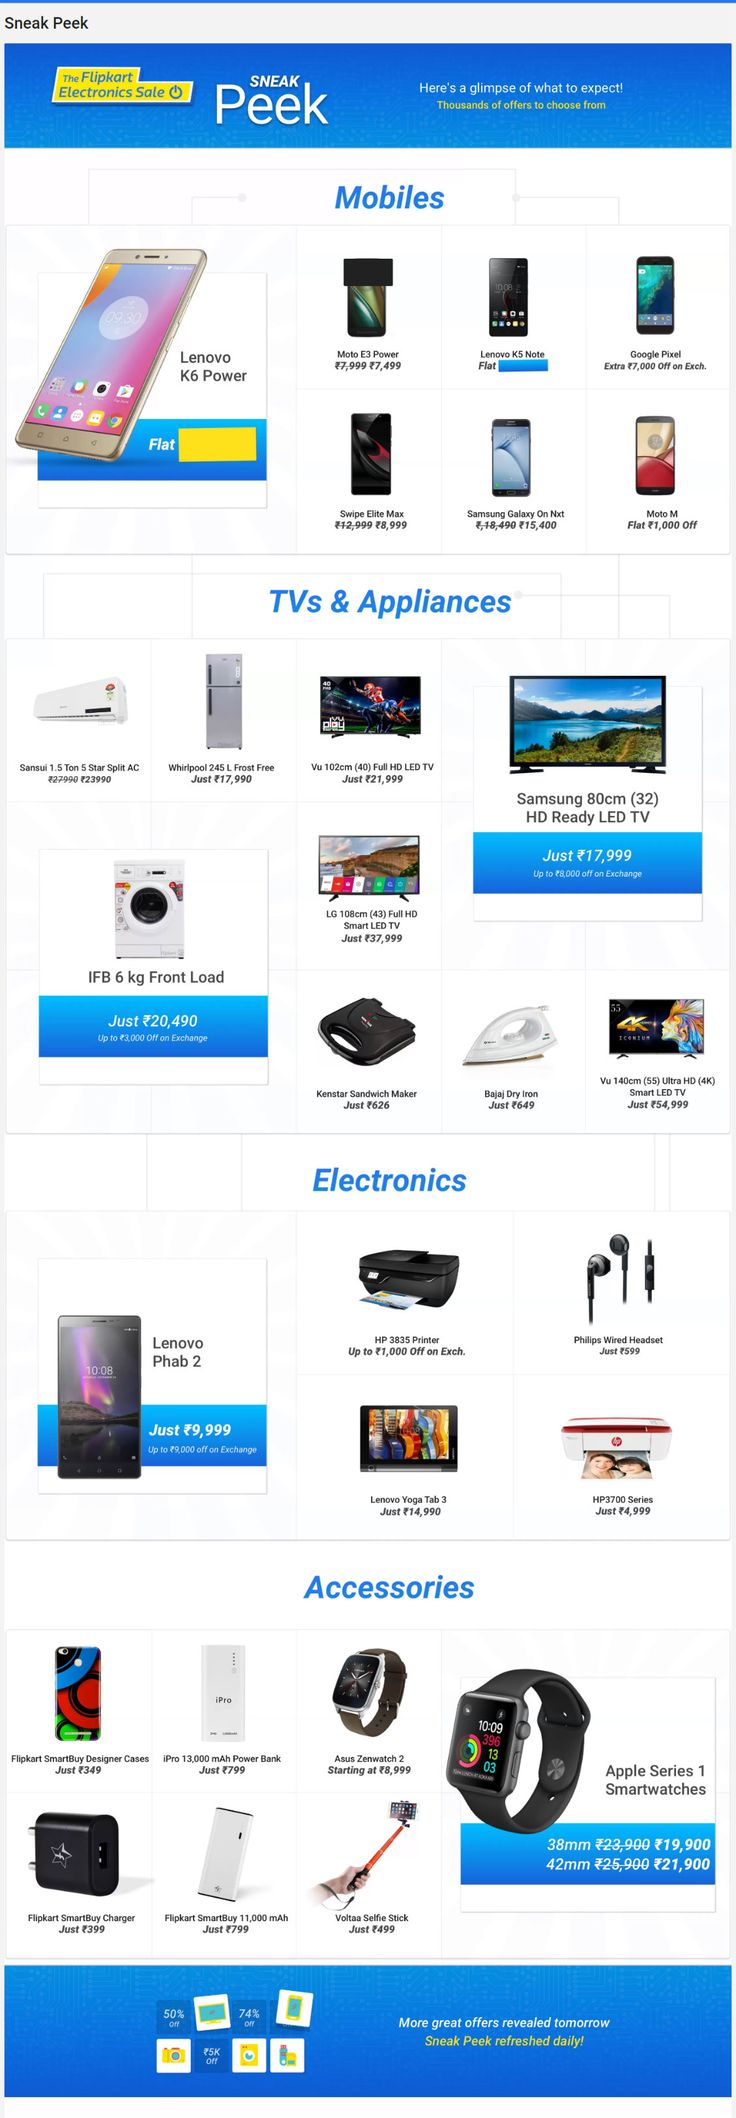 The Indian eCommerce giant Flipkart is all set to launch another #electronic #sale from 22nd to 24th March 2017. In this #Flipkart sale the company is offering thousands of electronic items on heavy #discounts and #cashback offers.